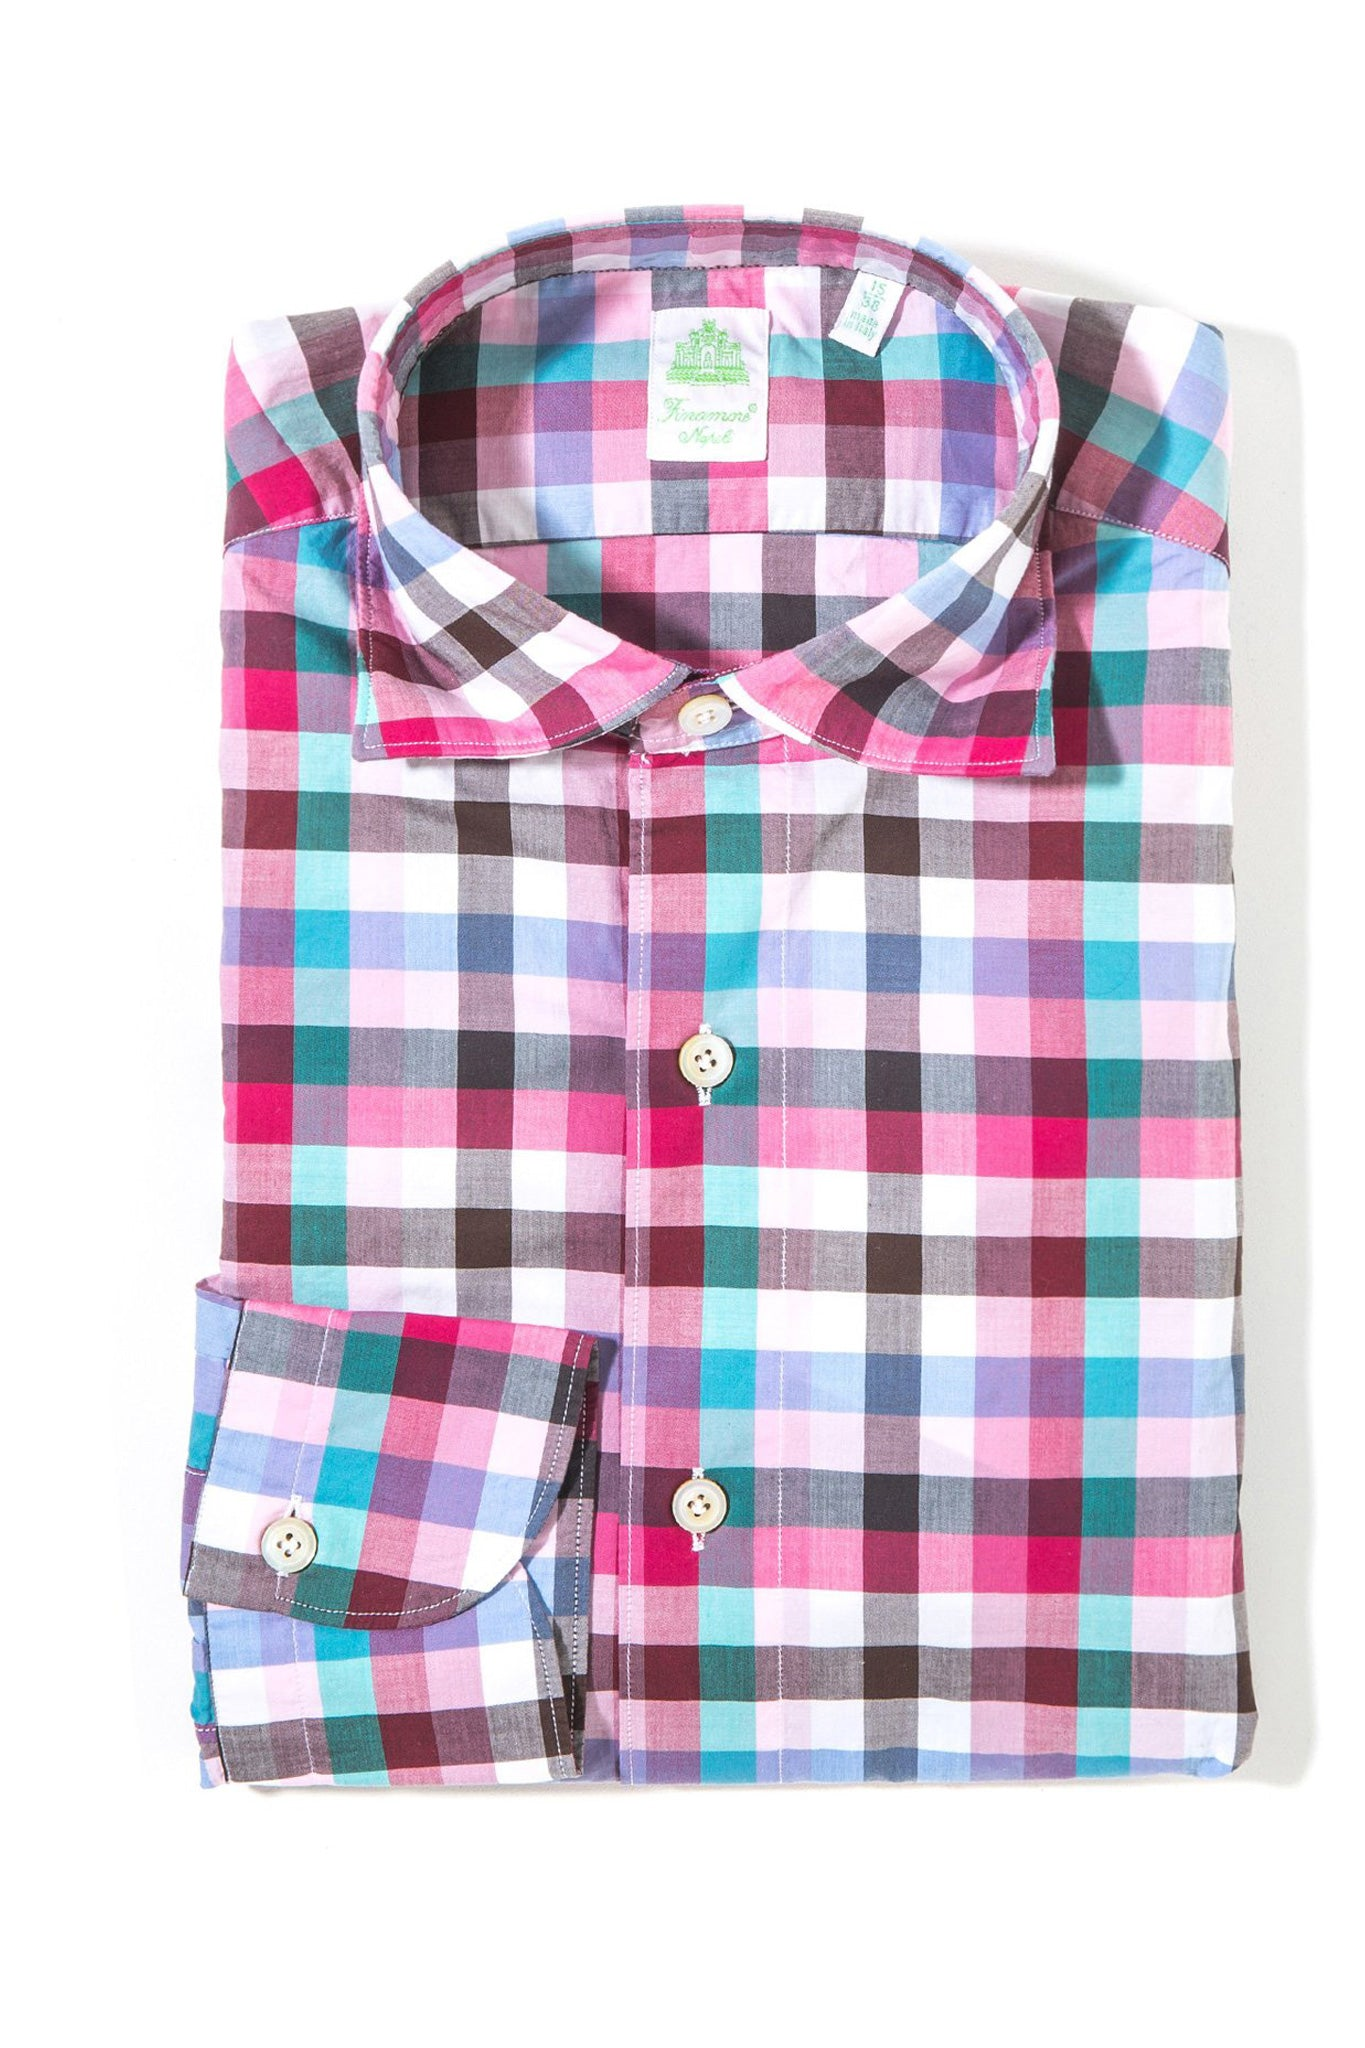 Finamore Giovanni Sport Shirt Pink/Green Plaid (3578432225373)